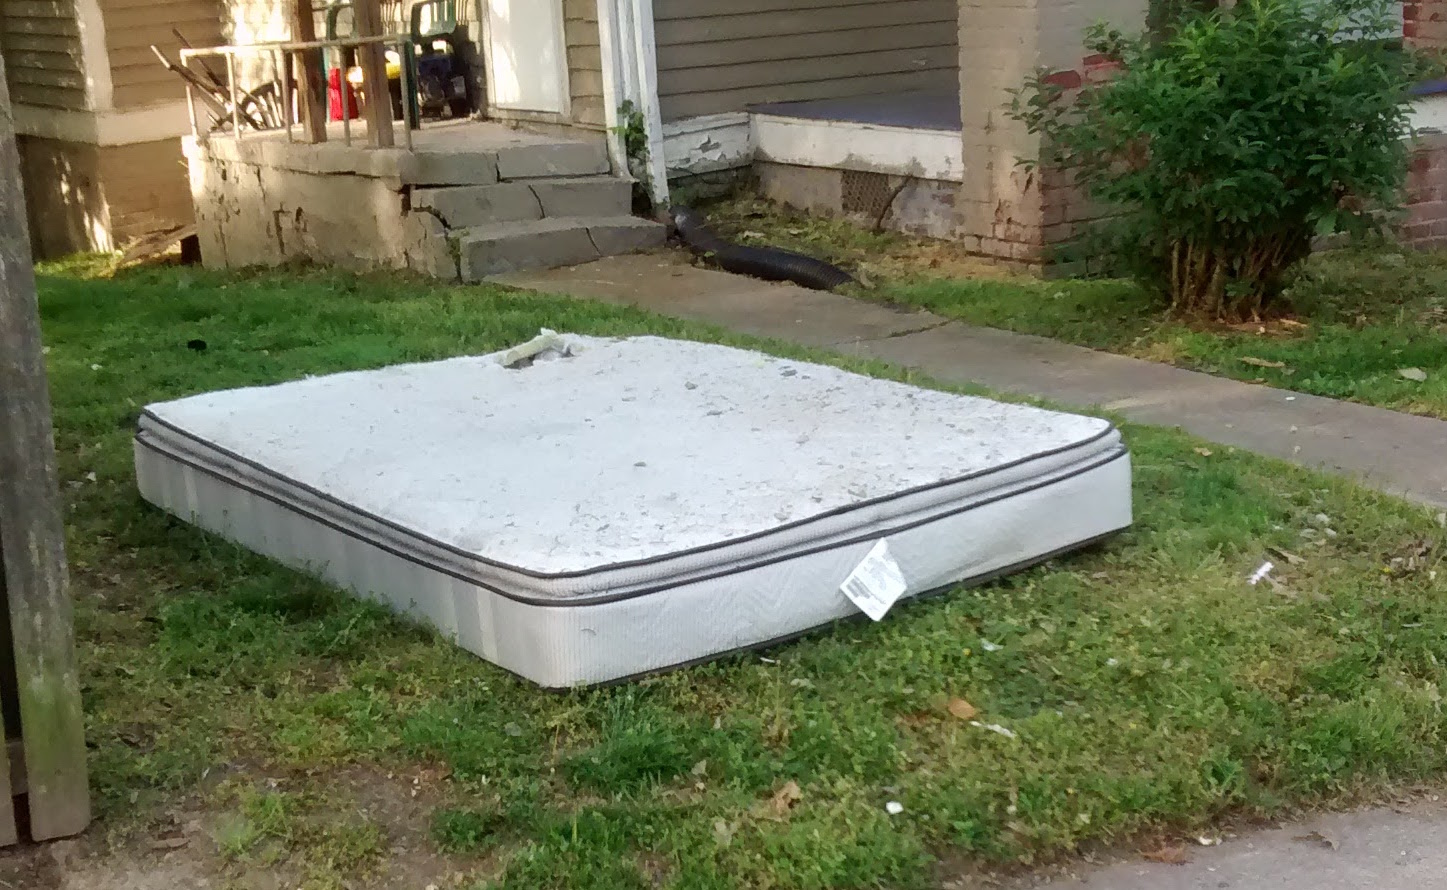 mattress in yard, thrown away by some thoughtless person